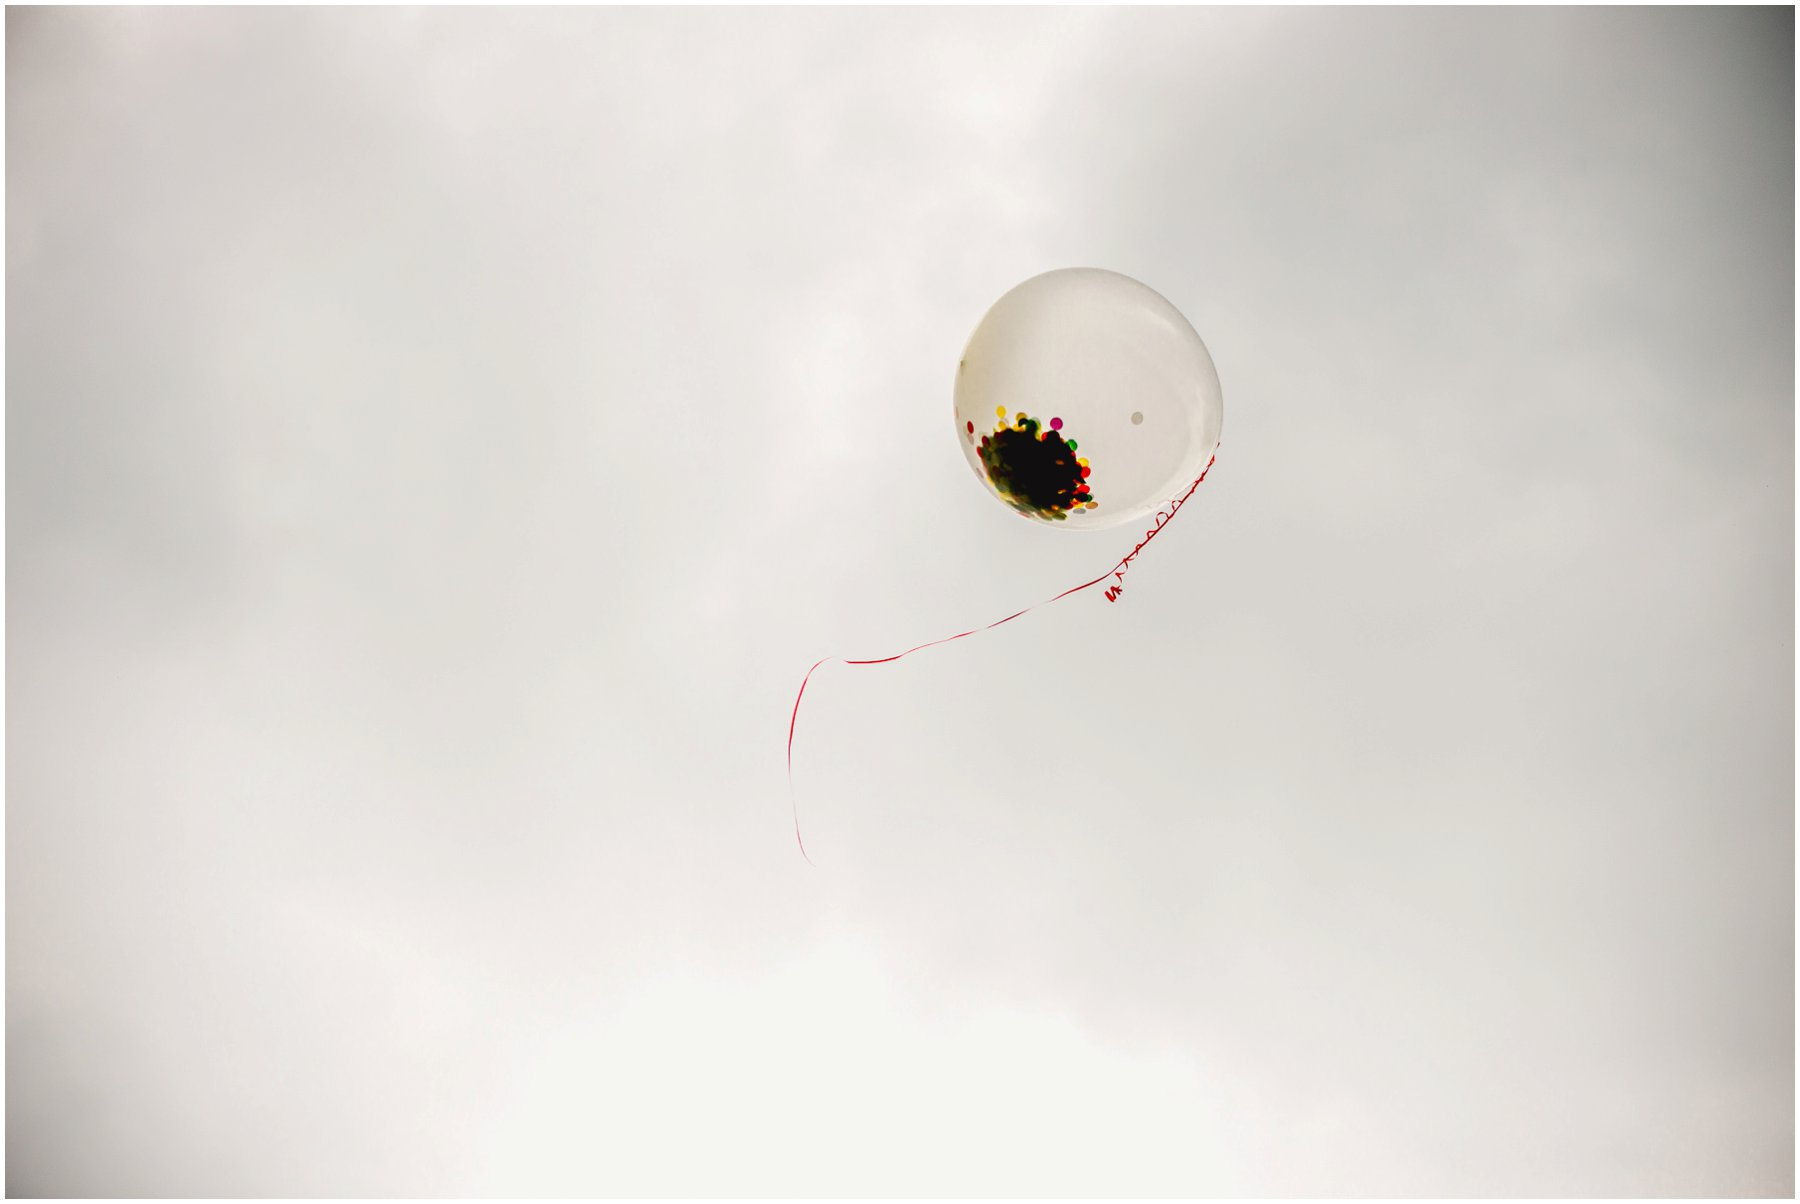 Confetti balloon flying off into the sky.